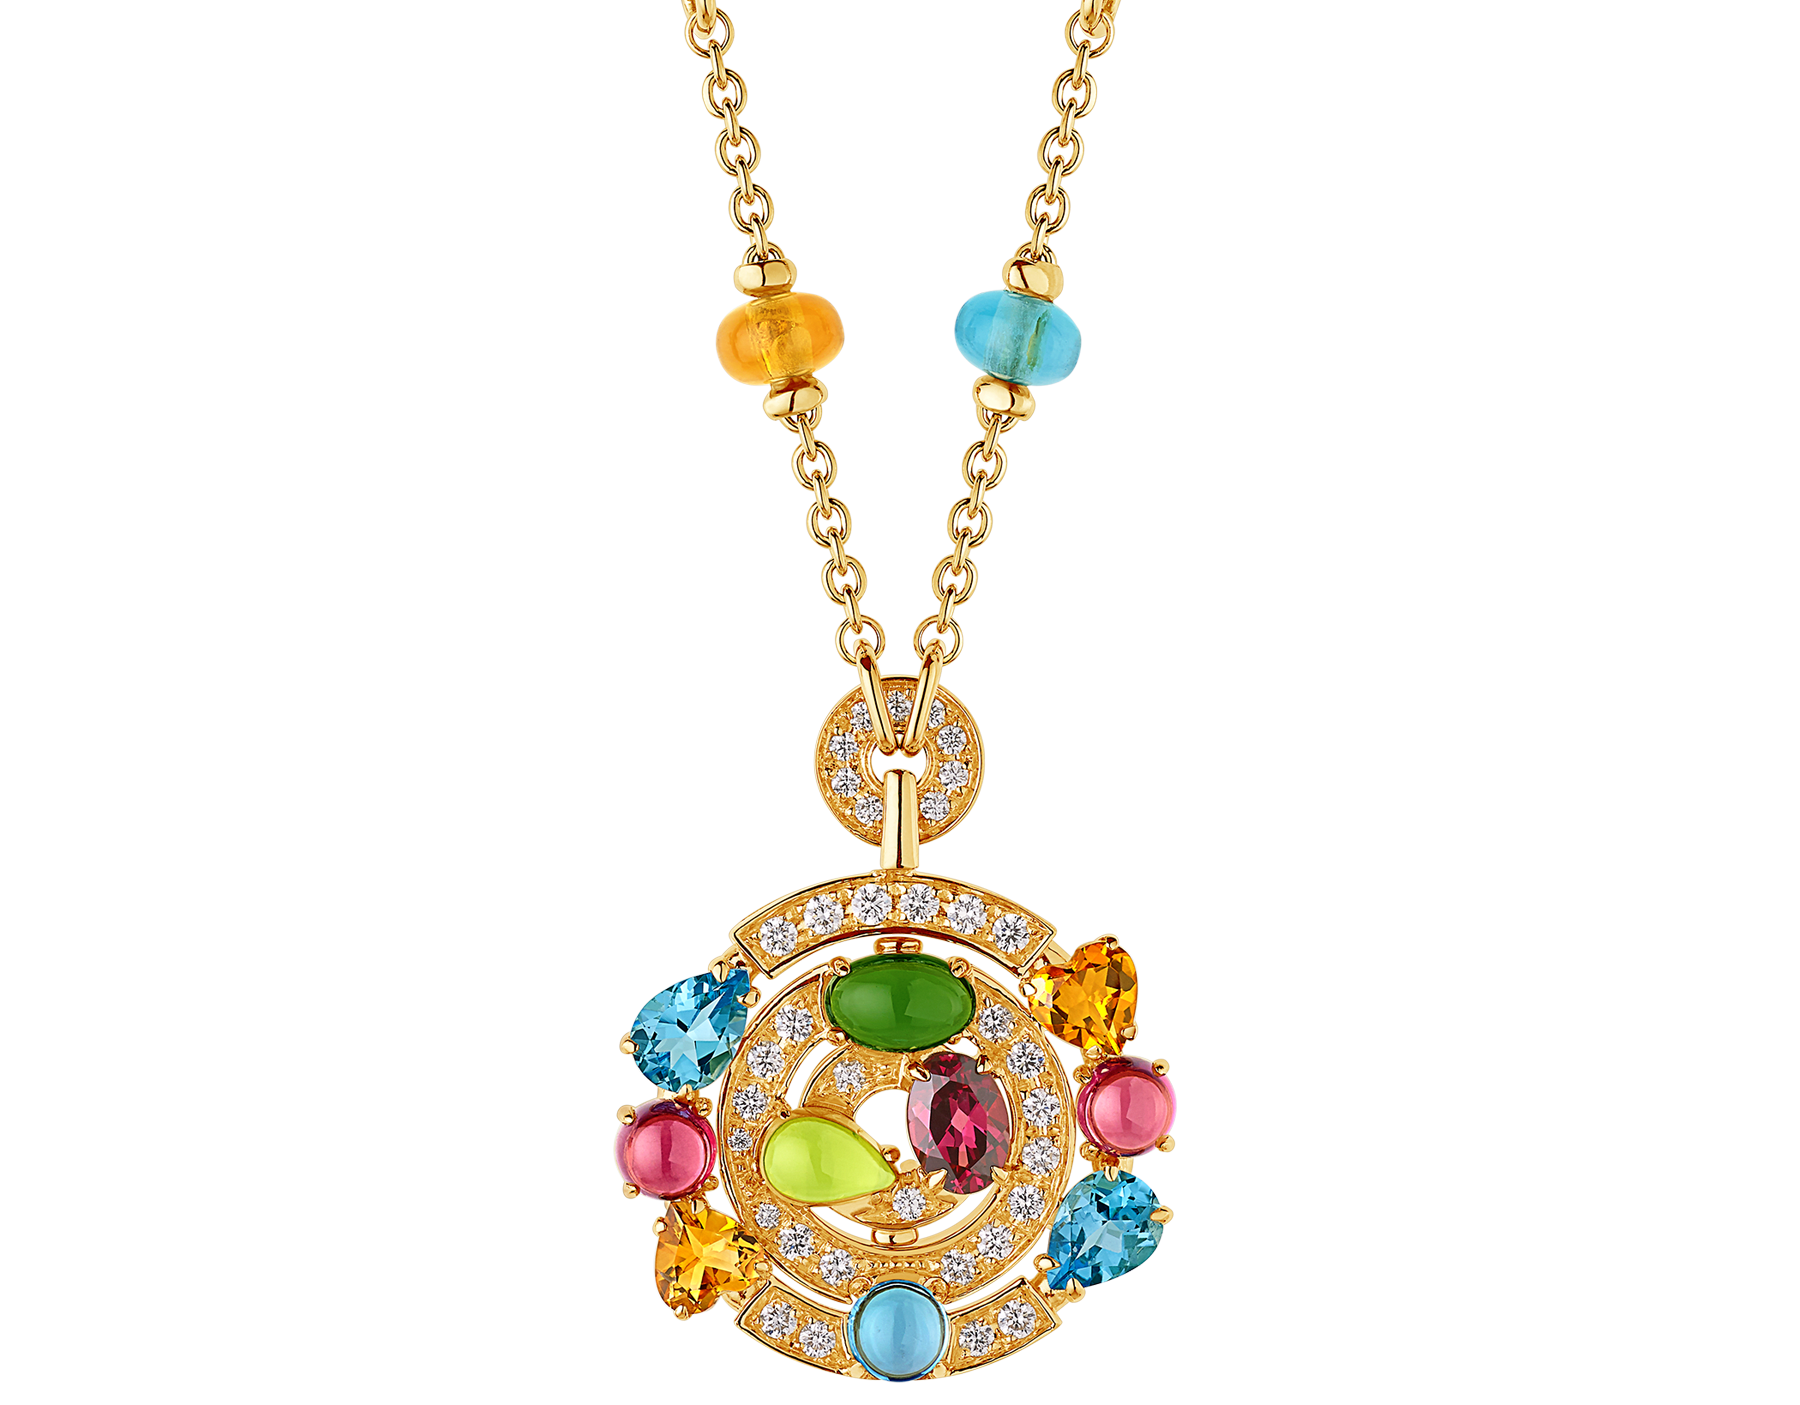 Cerchi 18 kt yellow gold large pendant necklace set with blue topazes, amethysts, green tourmalines, peridots, citrine quartz, rhodolite garnets and pavé diamonds 338229 image 1